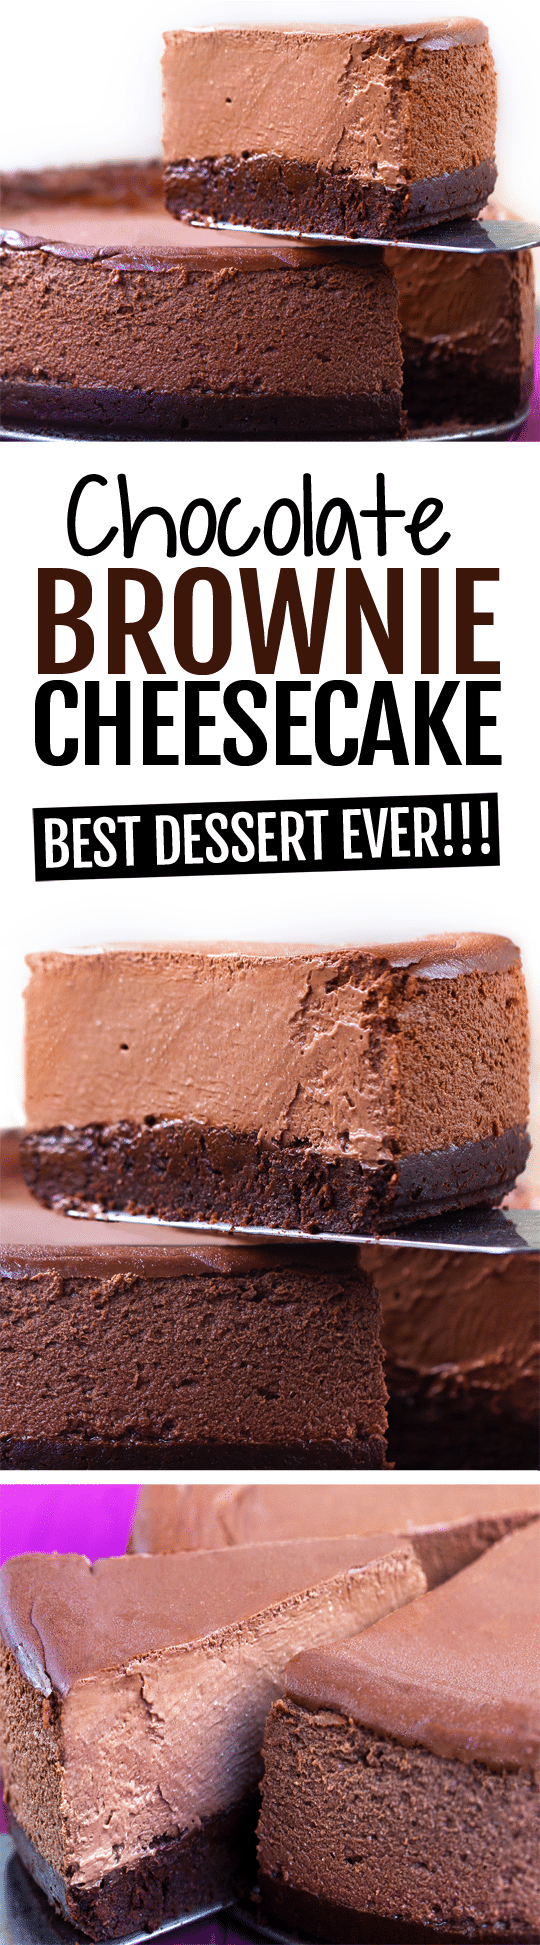 The Ultimate Creamy Chocolate Brownie Cheesecake Recipe